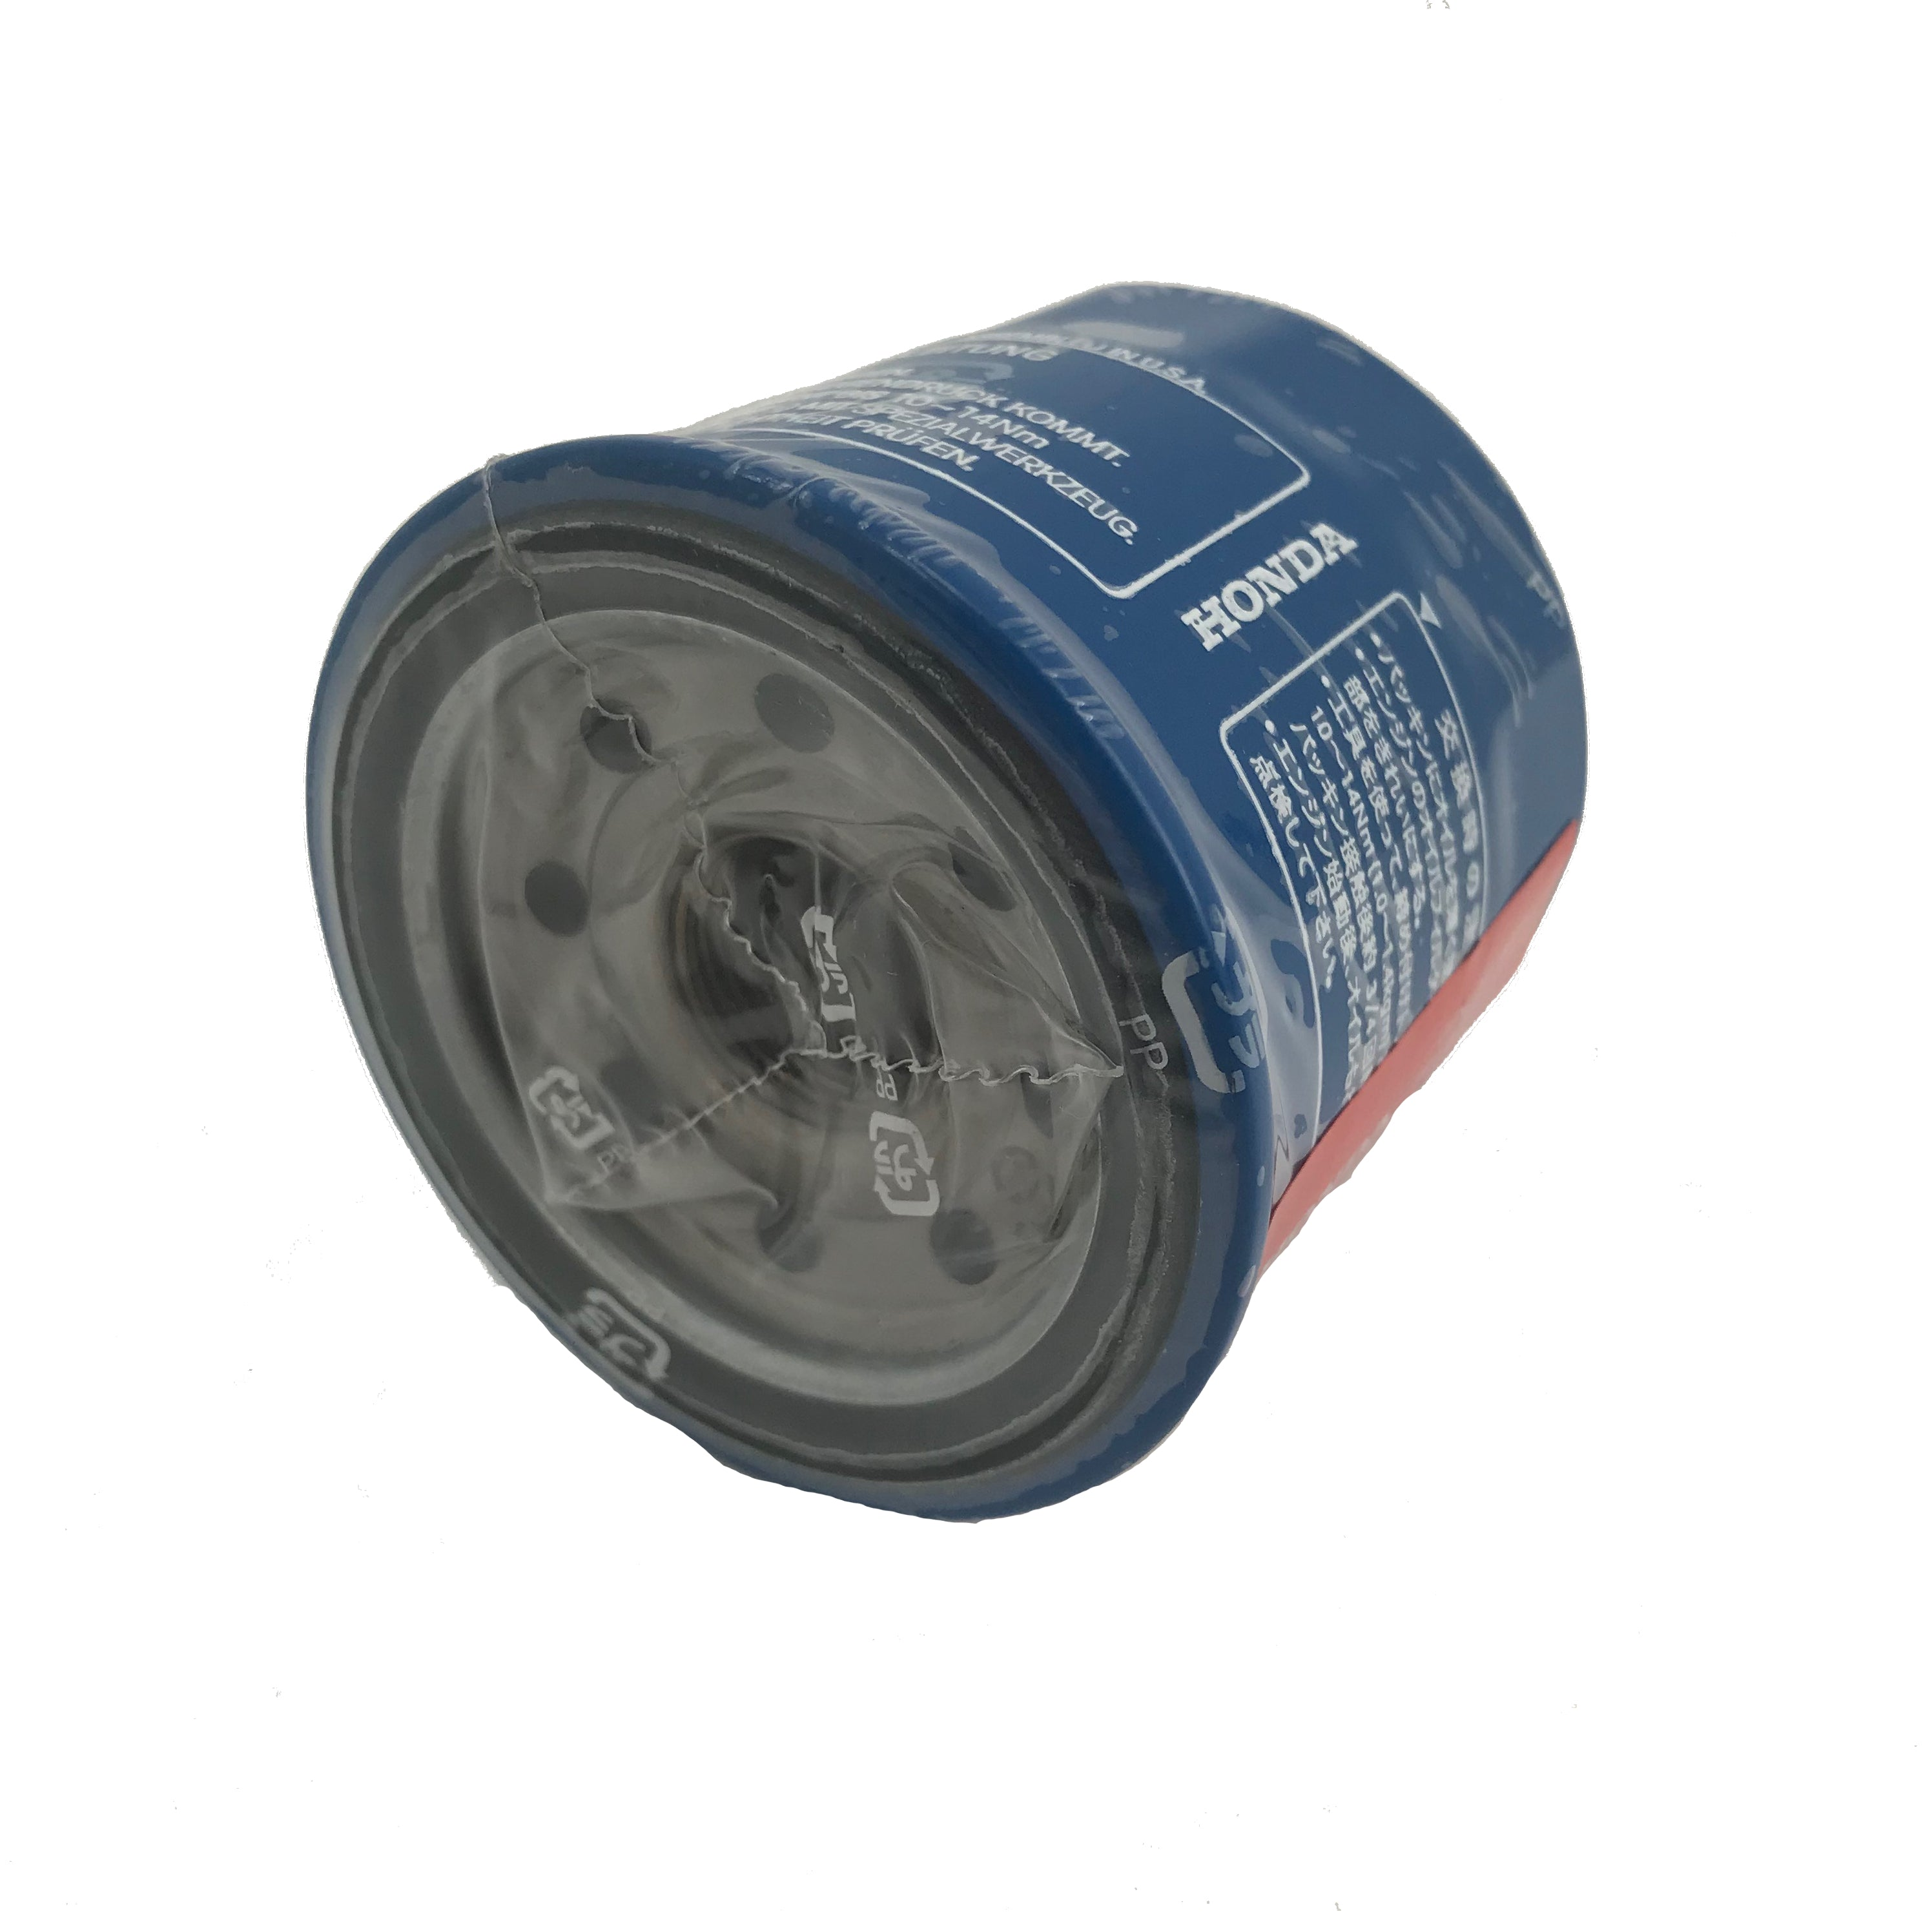 Honda Engine Oil Filter - 15400-PFB-014,1